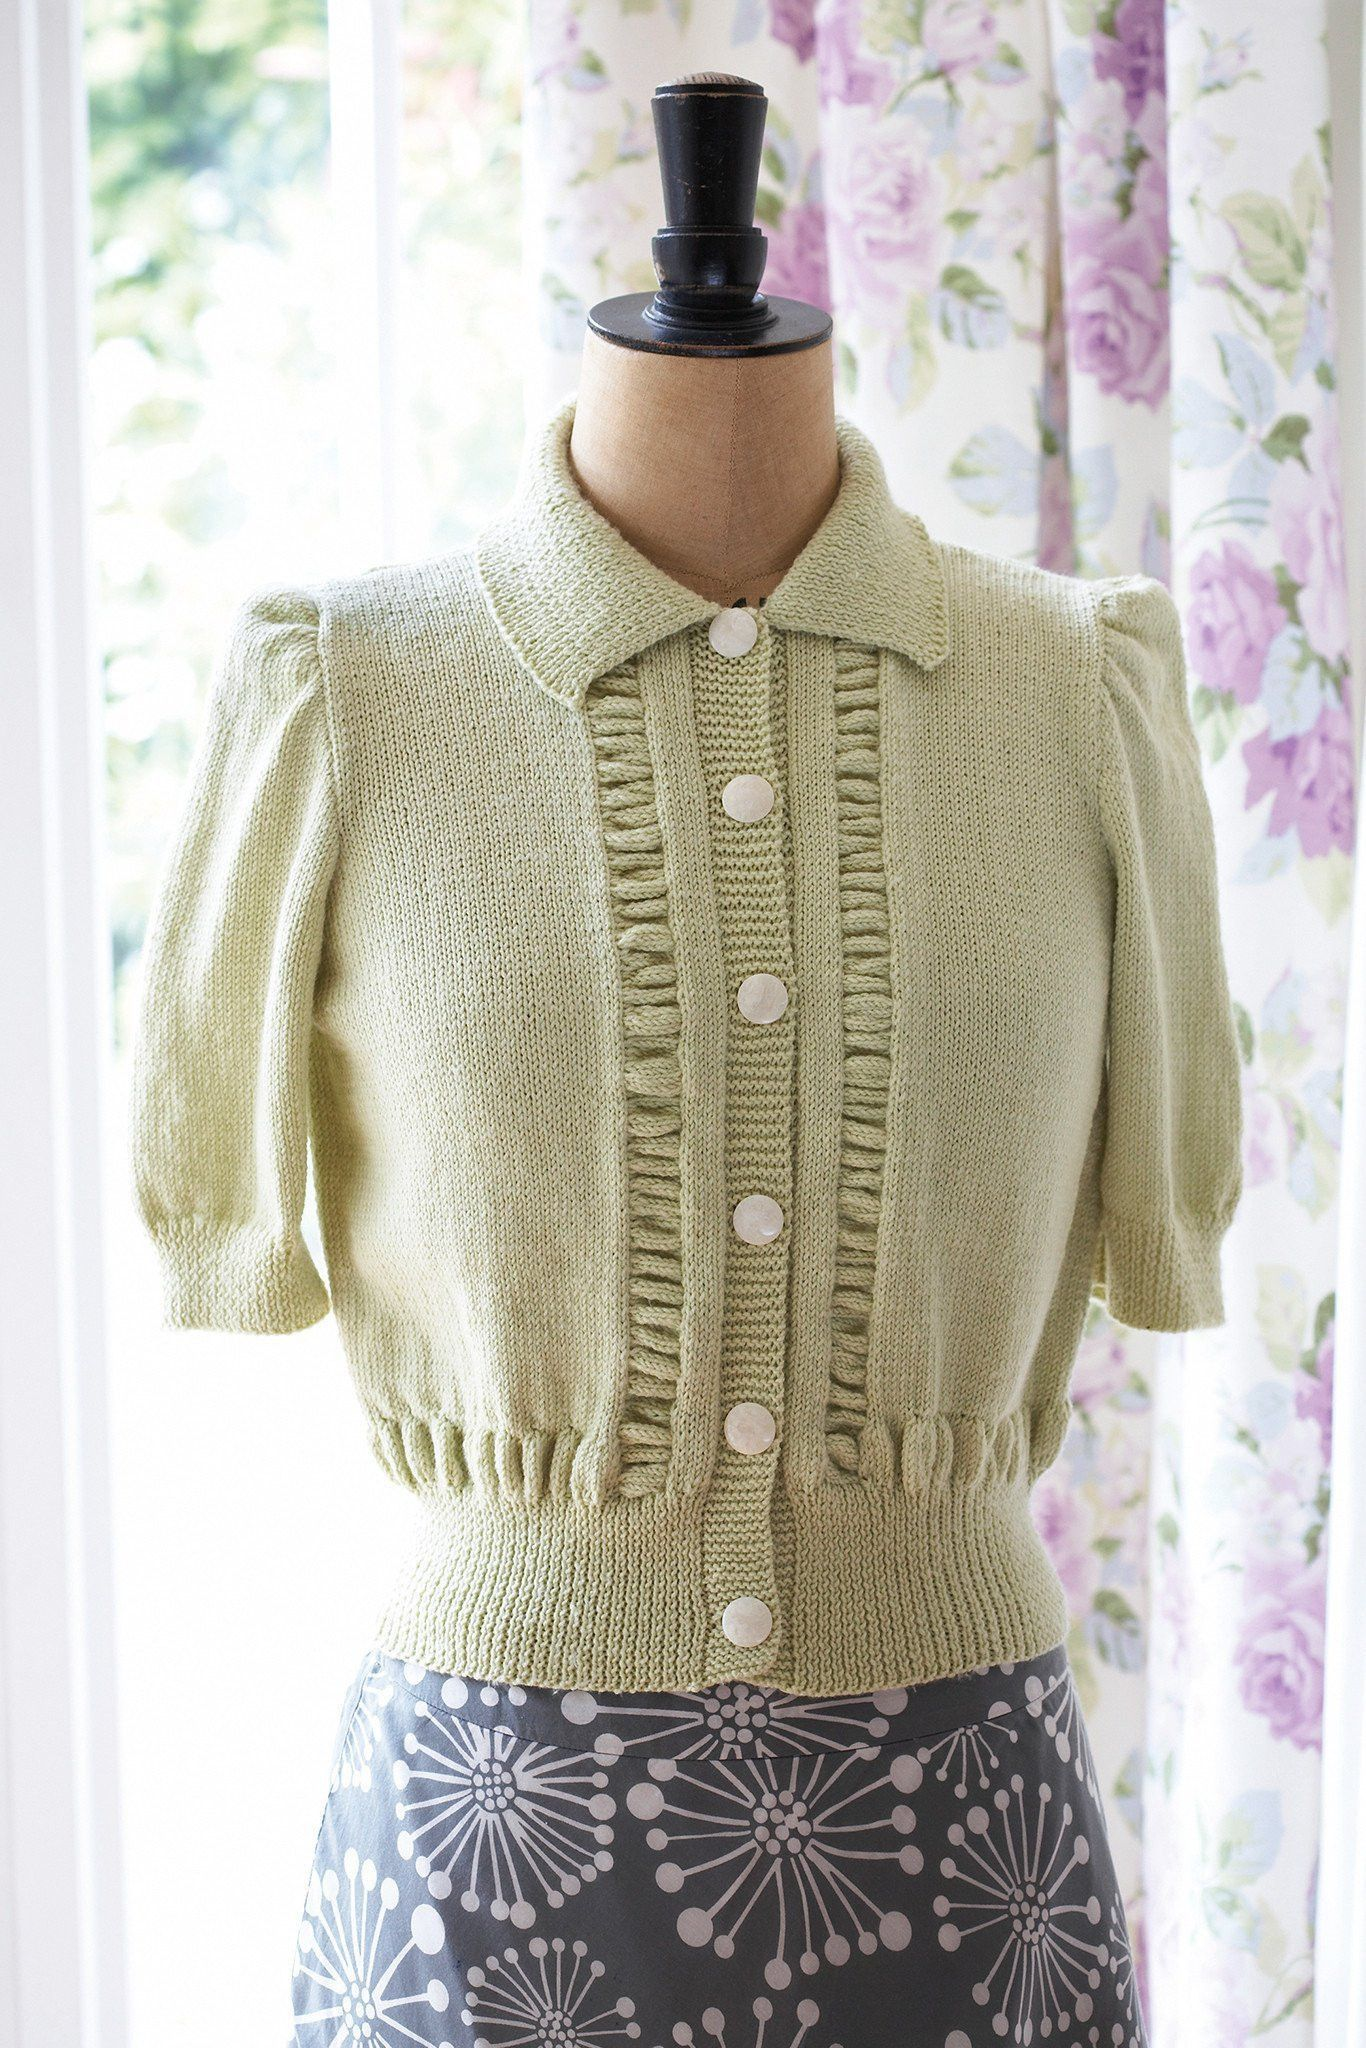 Vintage Short Sleeved Cardigan Knitting Pattern | The ...